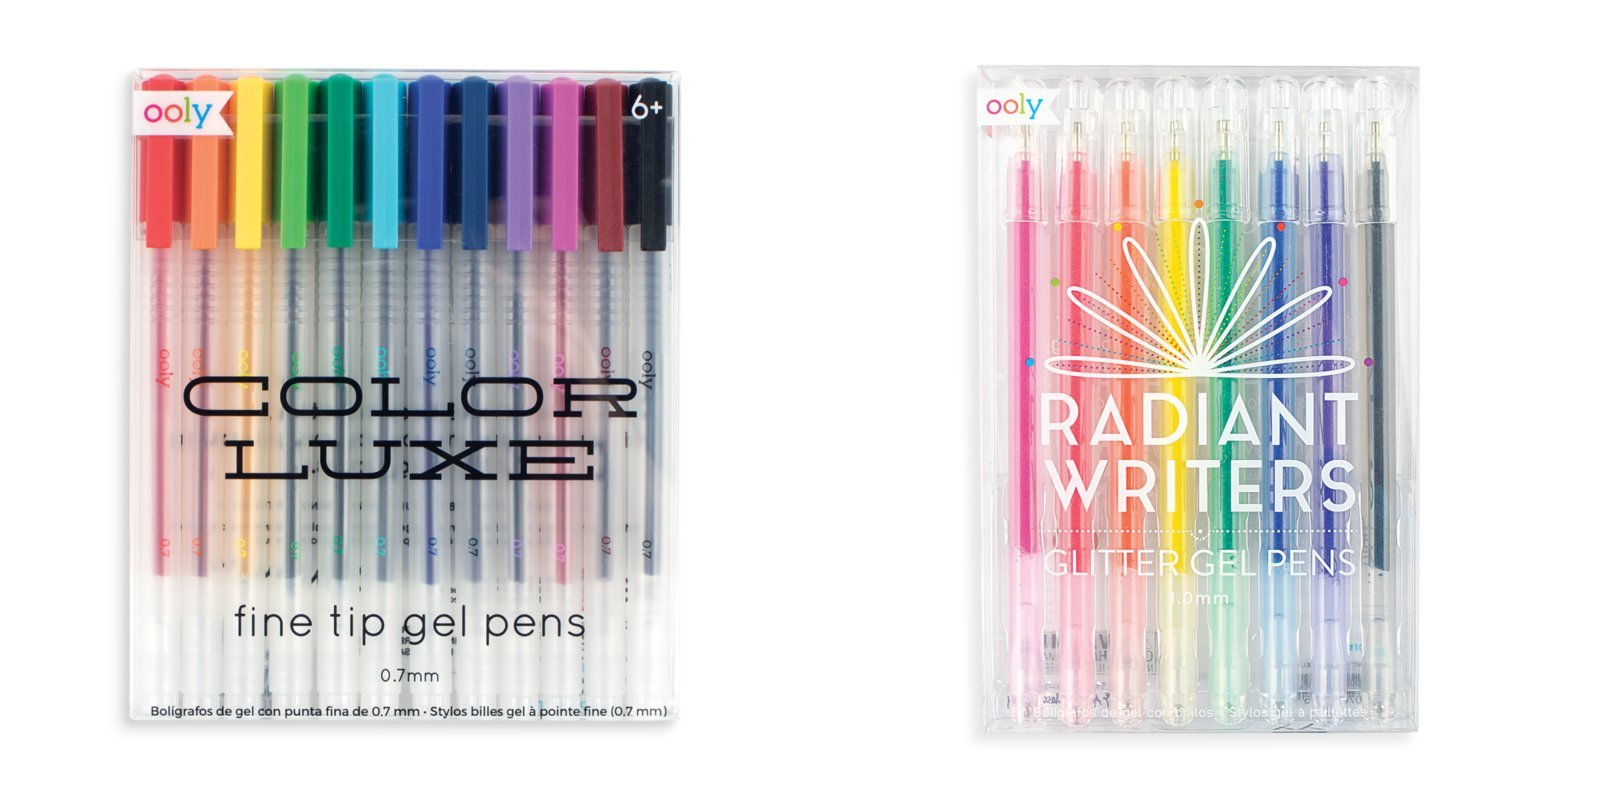 OOLY Radiant Writers Glitter Gel Pens and Color Luxe Gel Pen